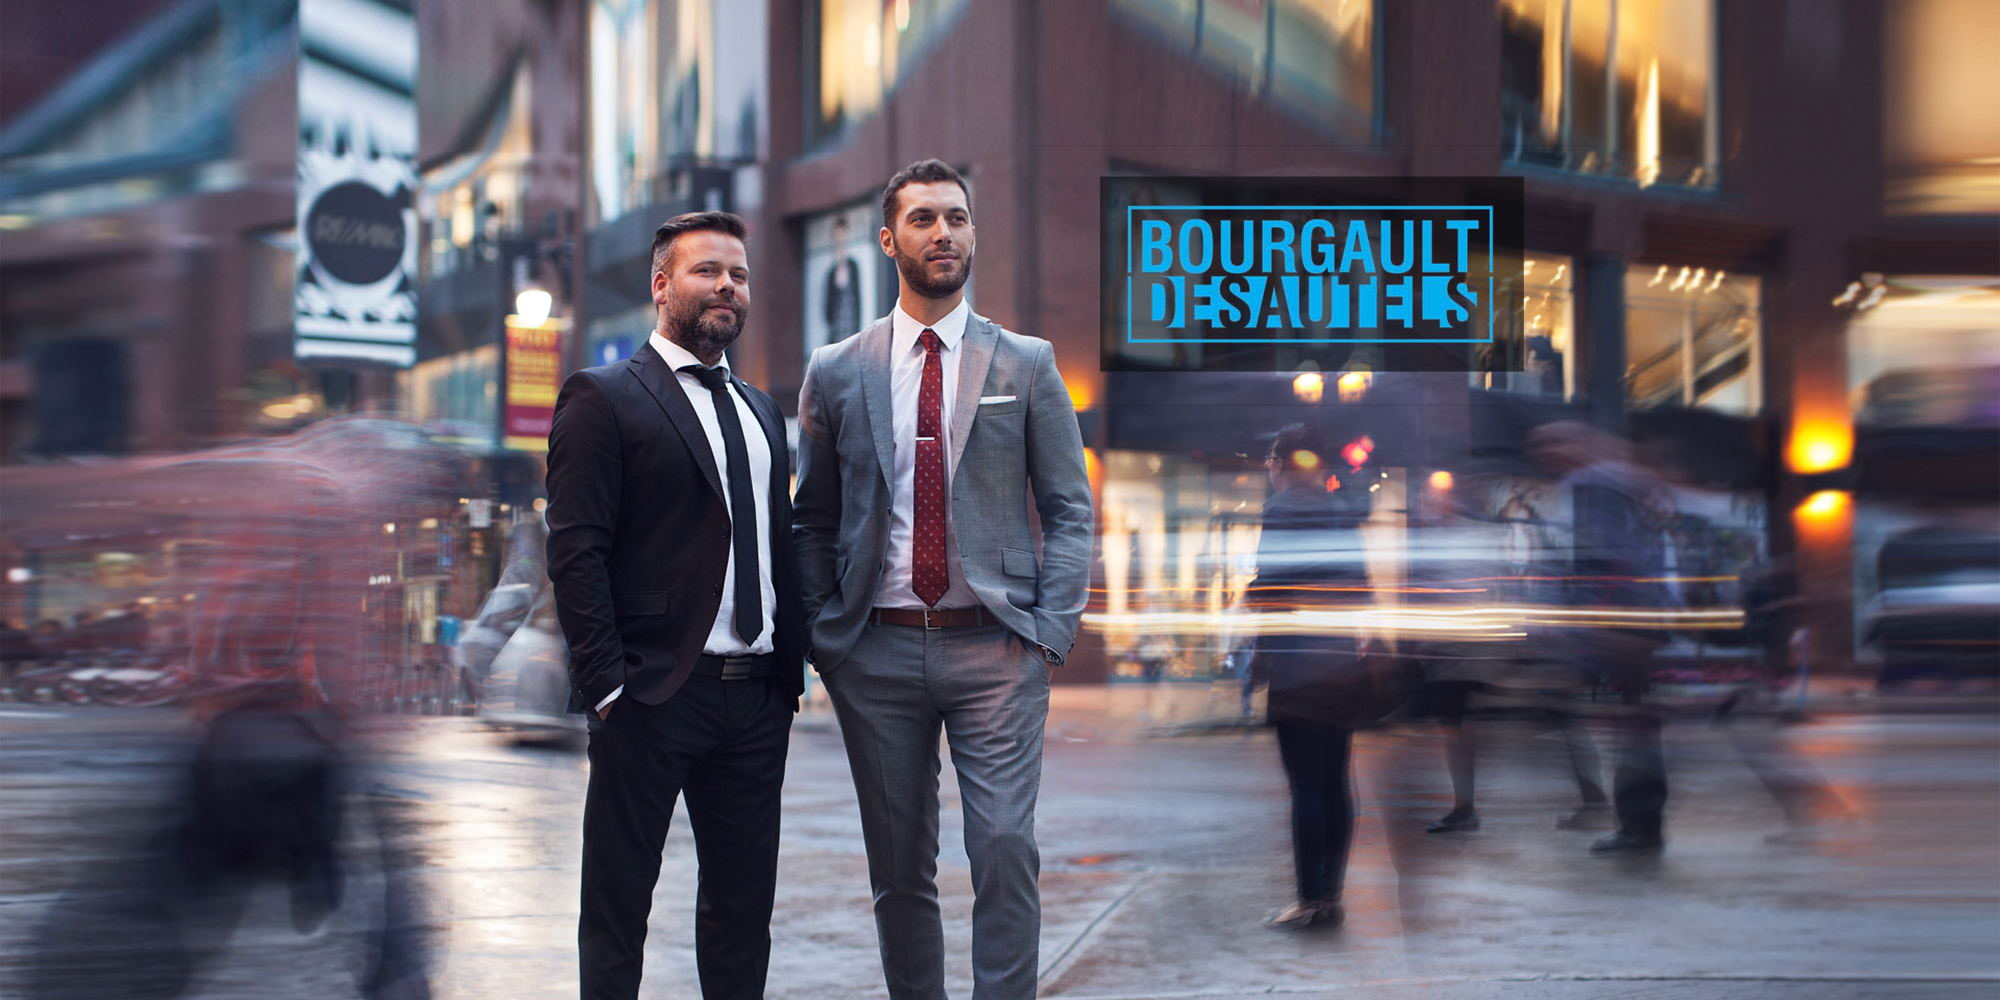 Bourgault Desautels